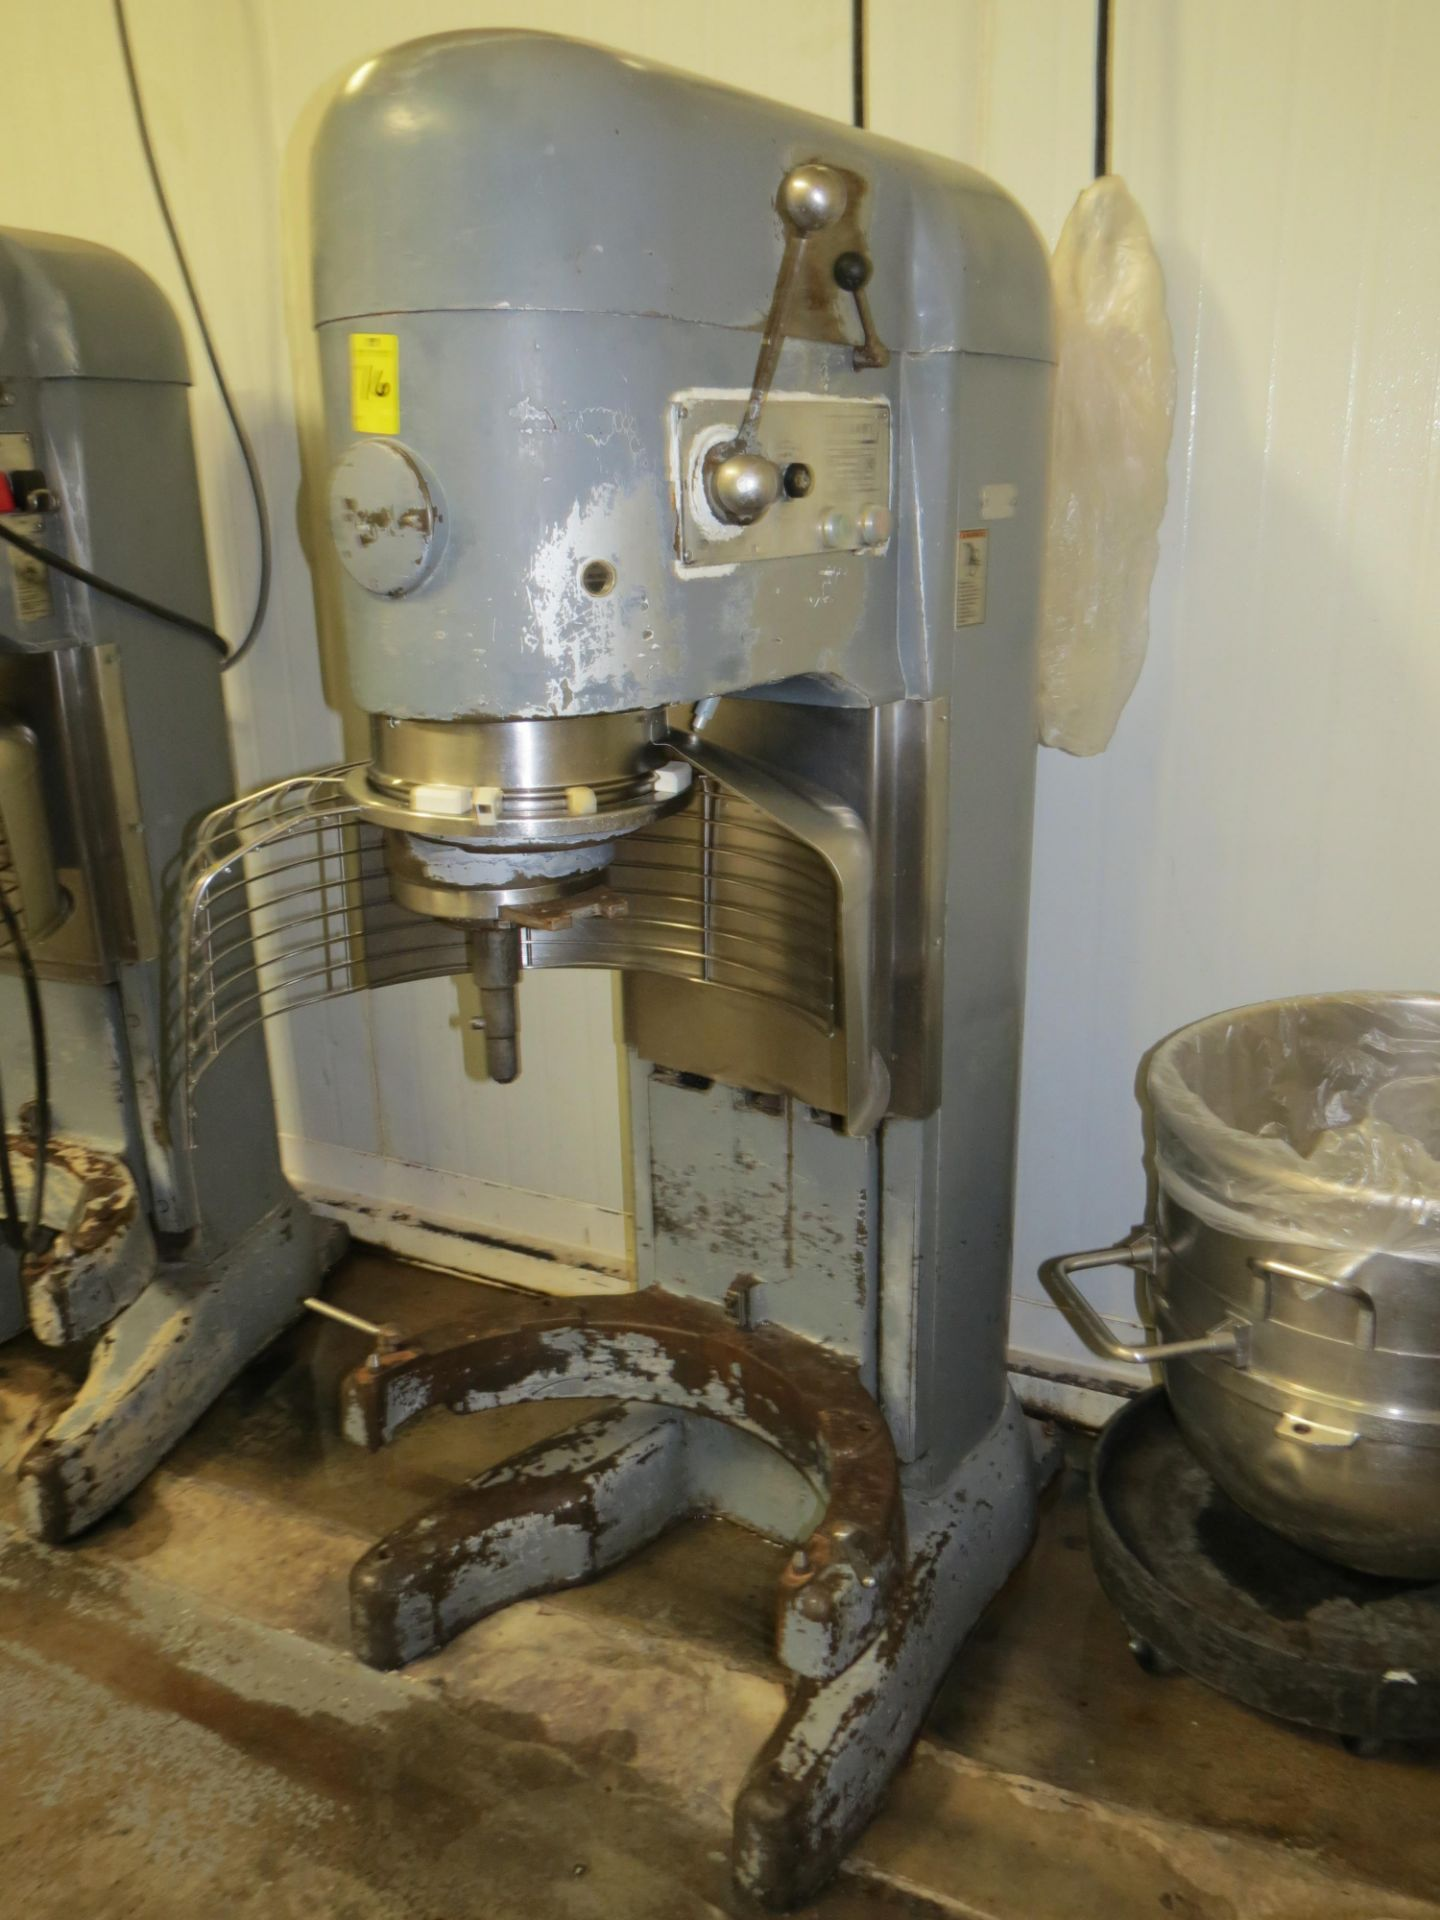 Lot 16 - HOBART V-1401 SERIES MIXER SN: 11-106-691